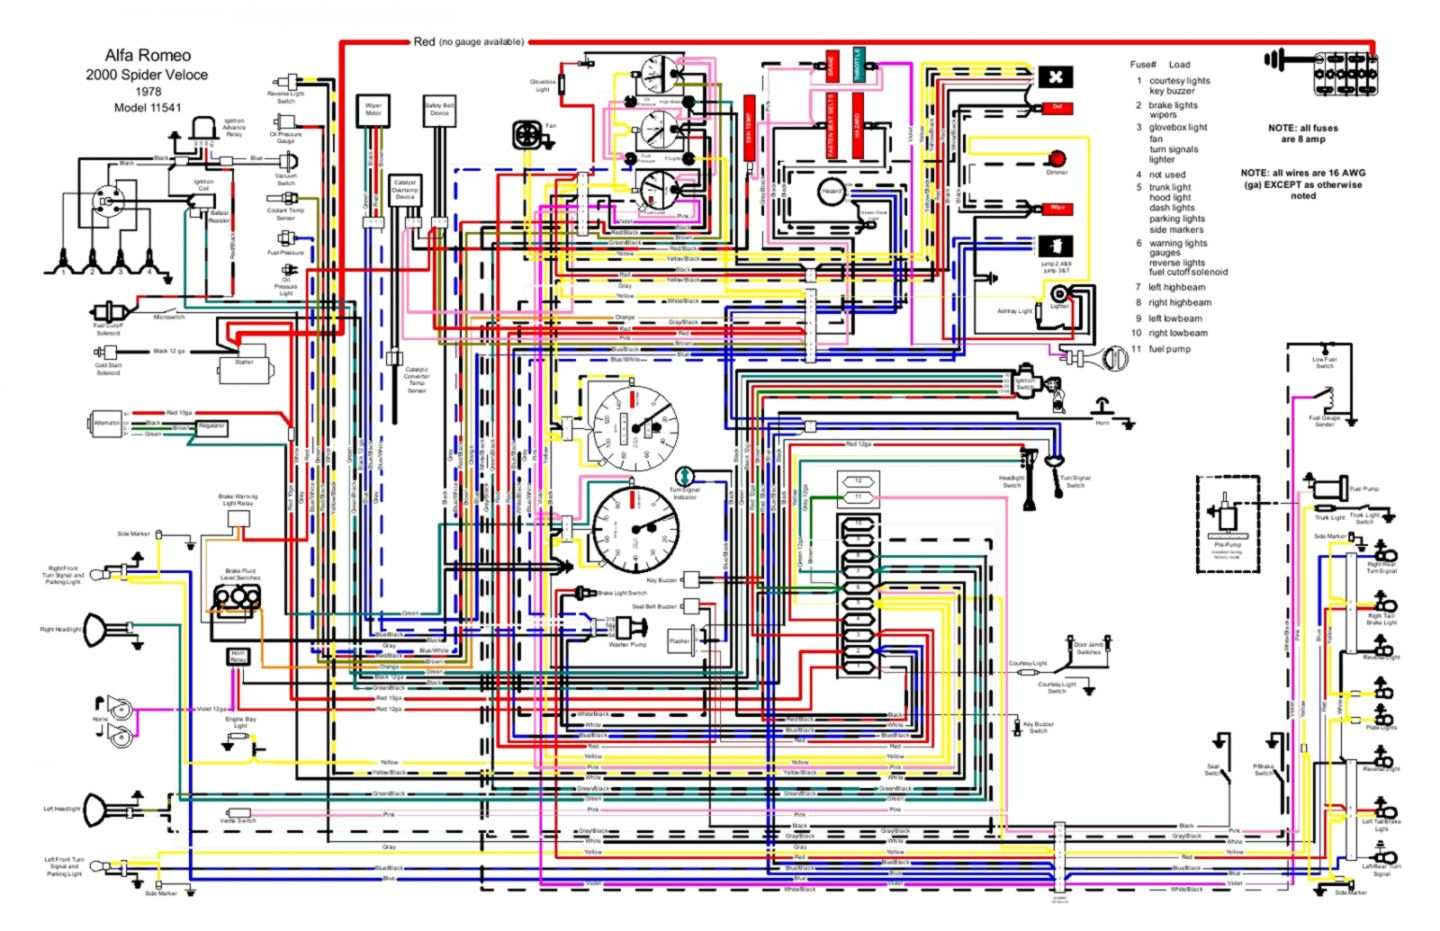 hight resolution of automotive wiring diagram maker wiring diagram paper programmable thermostat wiring diagram wiring diagram app wiring diagram